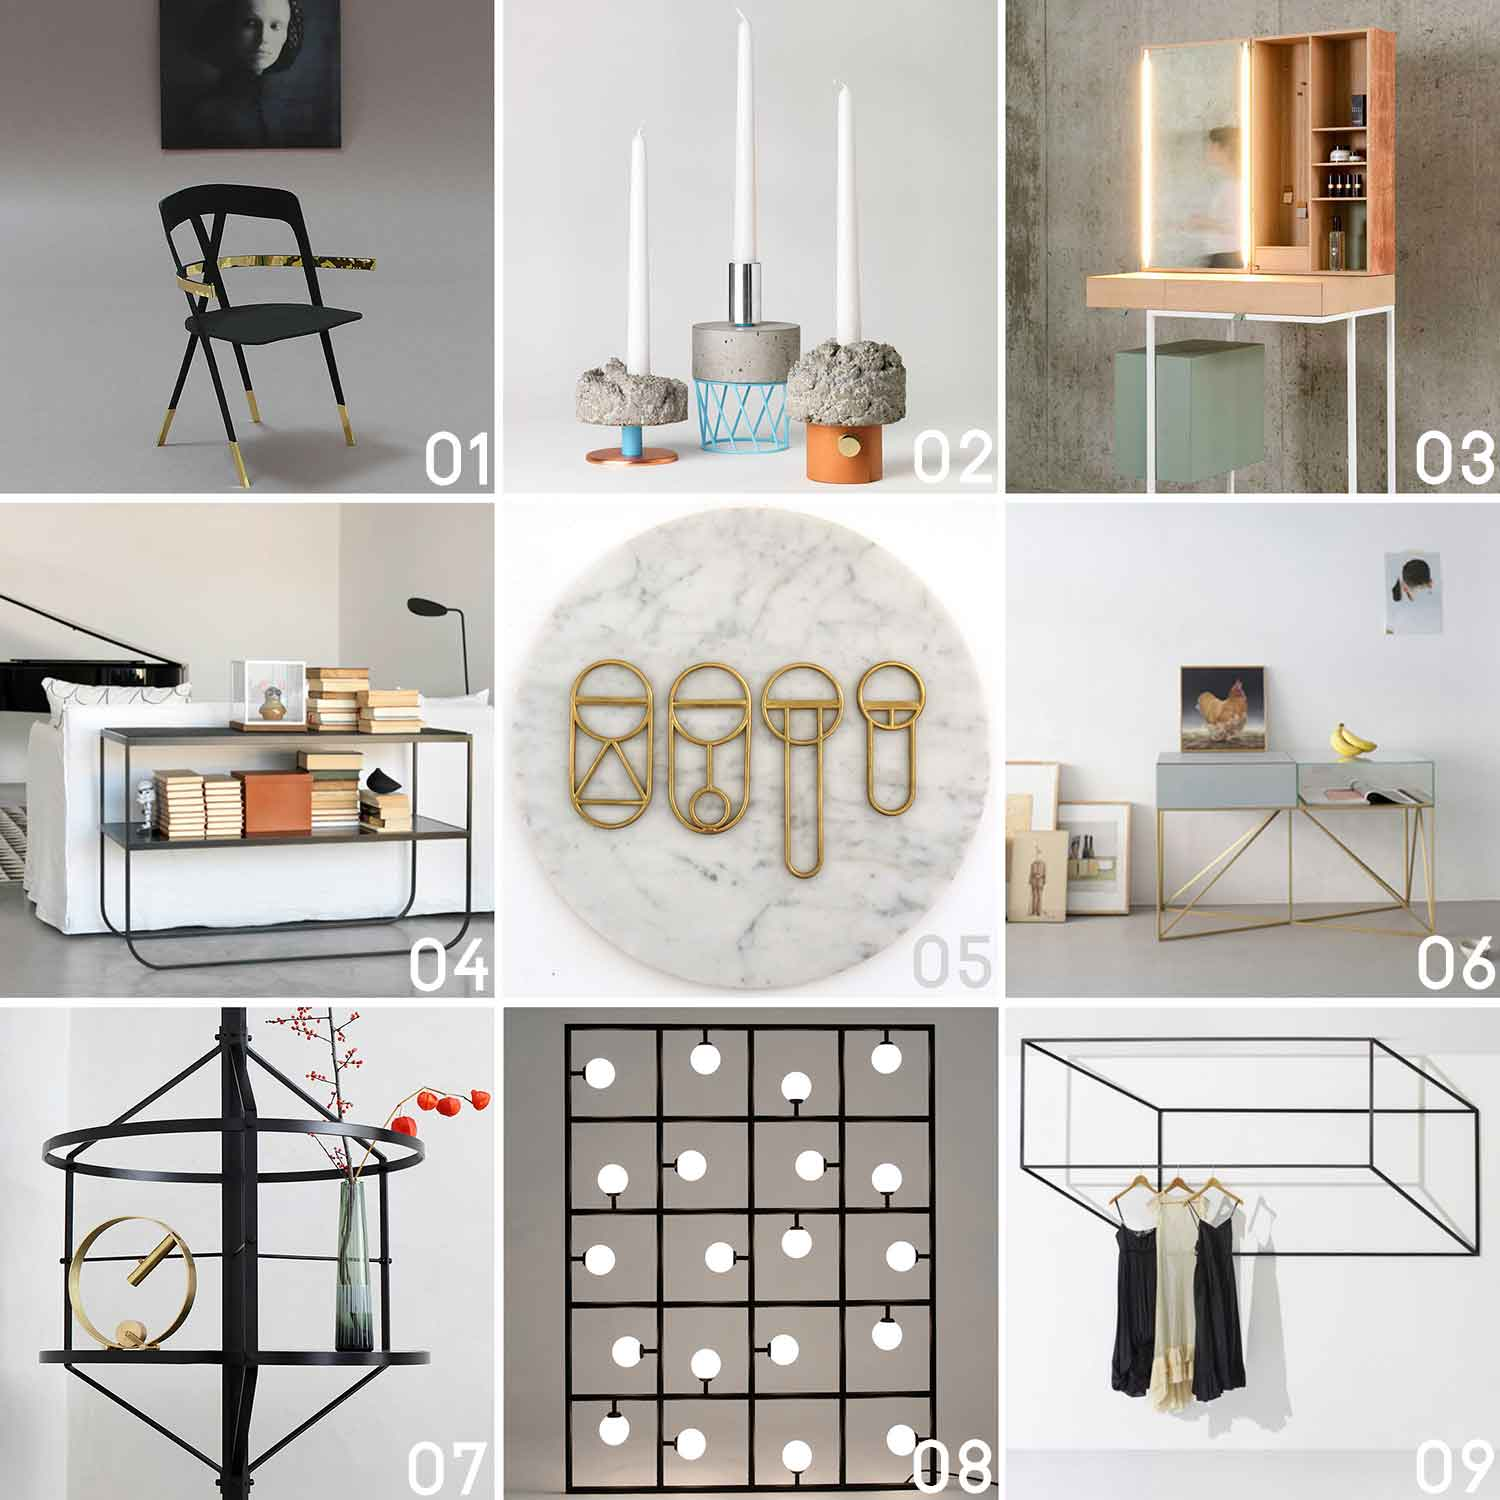 Product Design – Finishes, Furniture, Lighting | Yellowtrace 2013 Archive